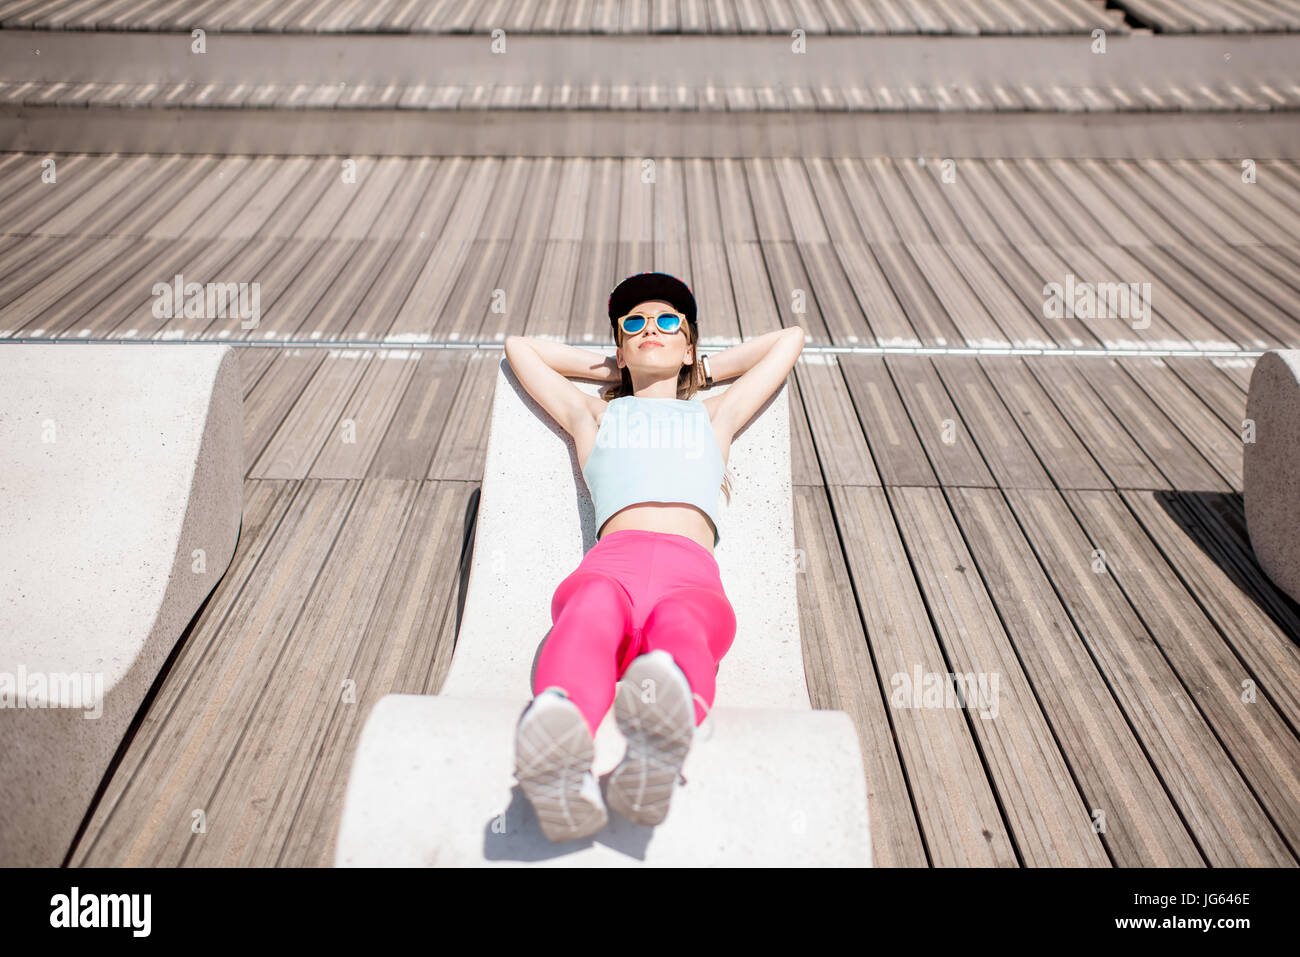 Woman in sportswear on the sunbed - Stock Image